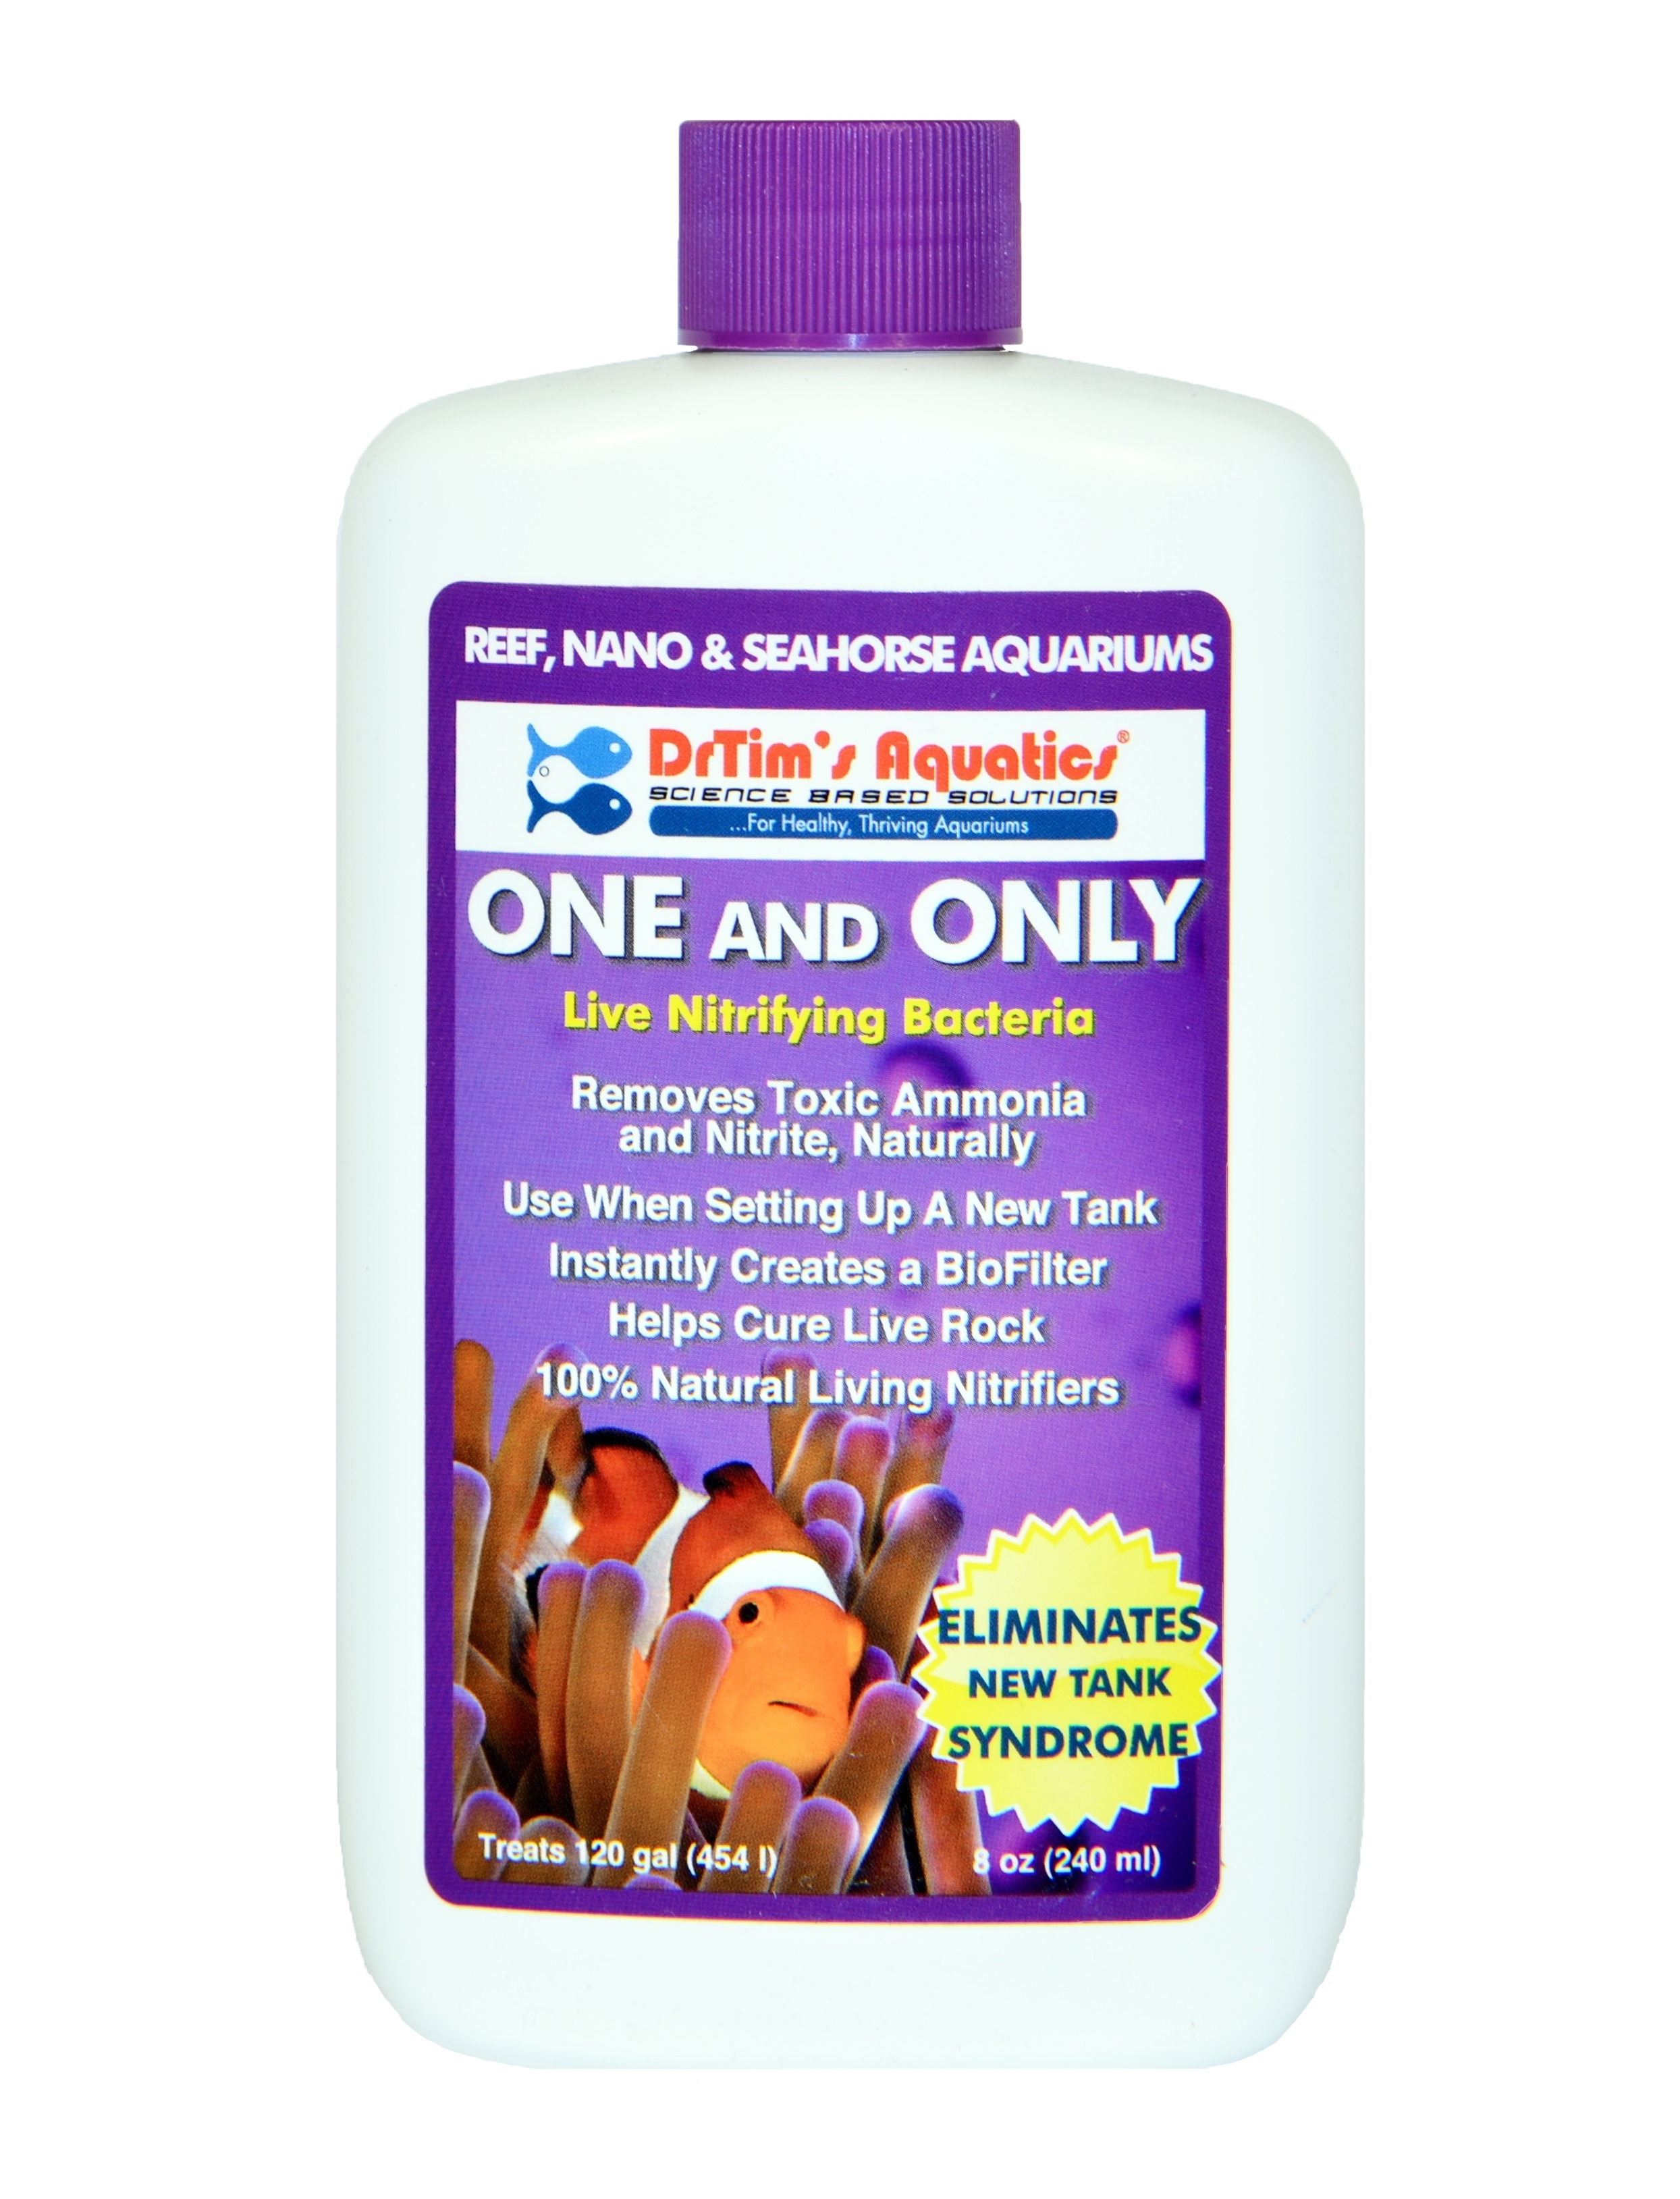 One Only Nitrifying Bacteria For Reef Nano Aquaria